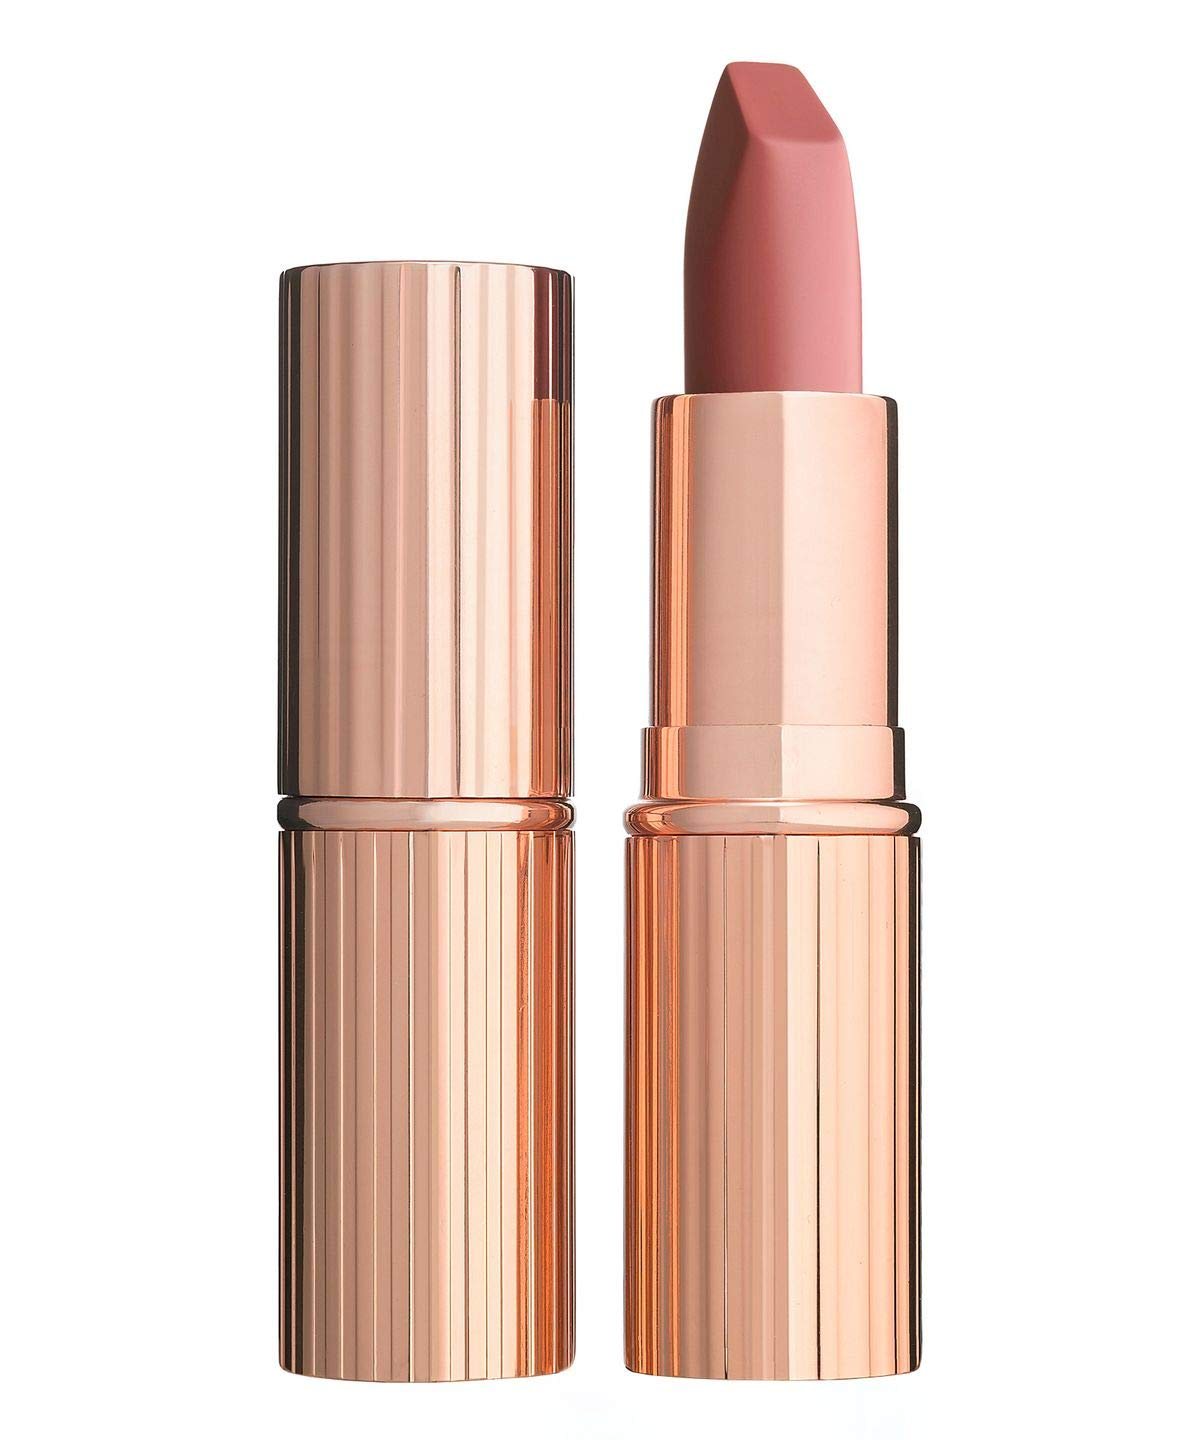 Charlotte Tilbury Matte Revolution Lipstick Pillow Talk CT